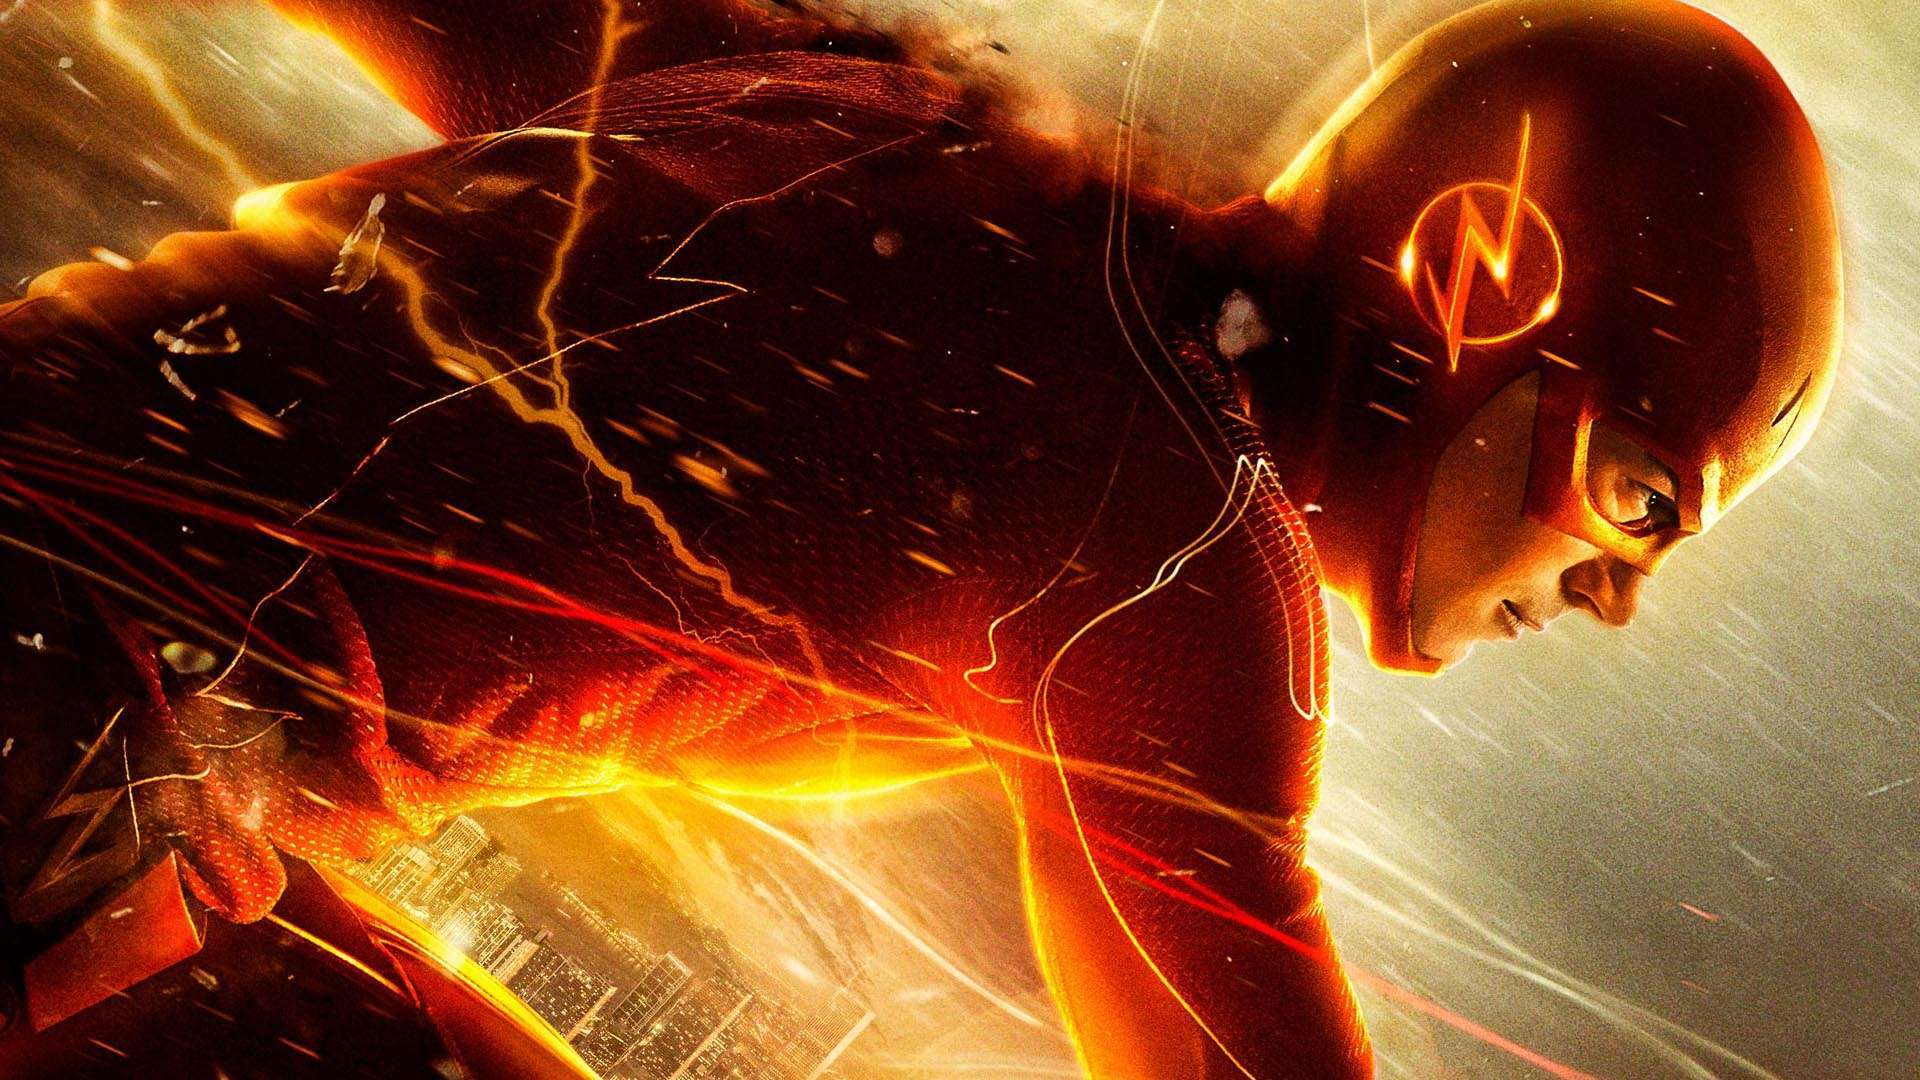 on September 7 2015 By admin Comments Off on The Flash HD Wallpapers 1920x1080